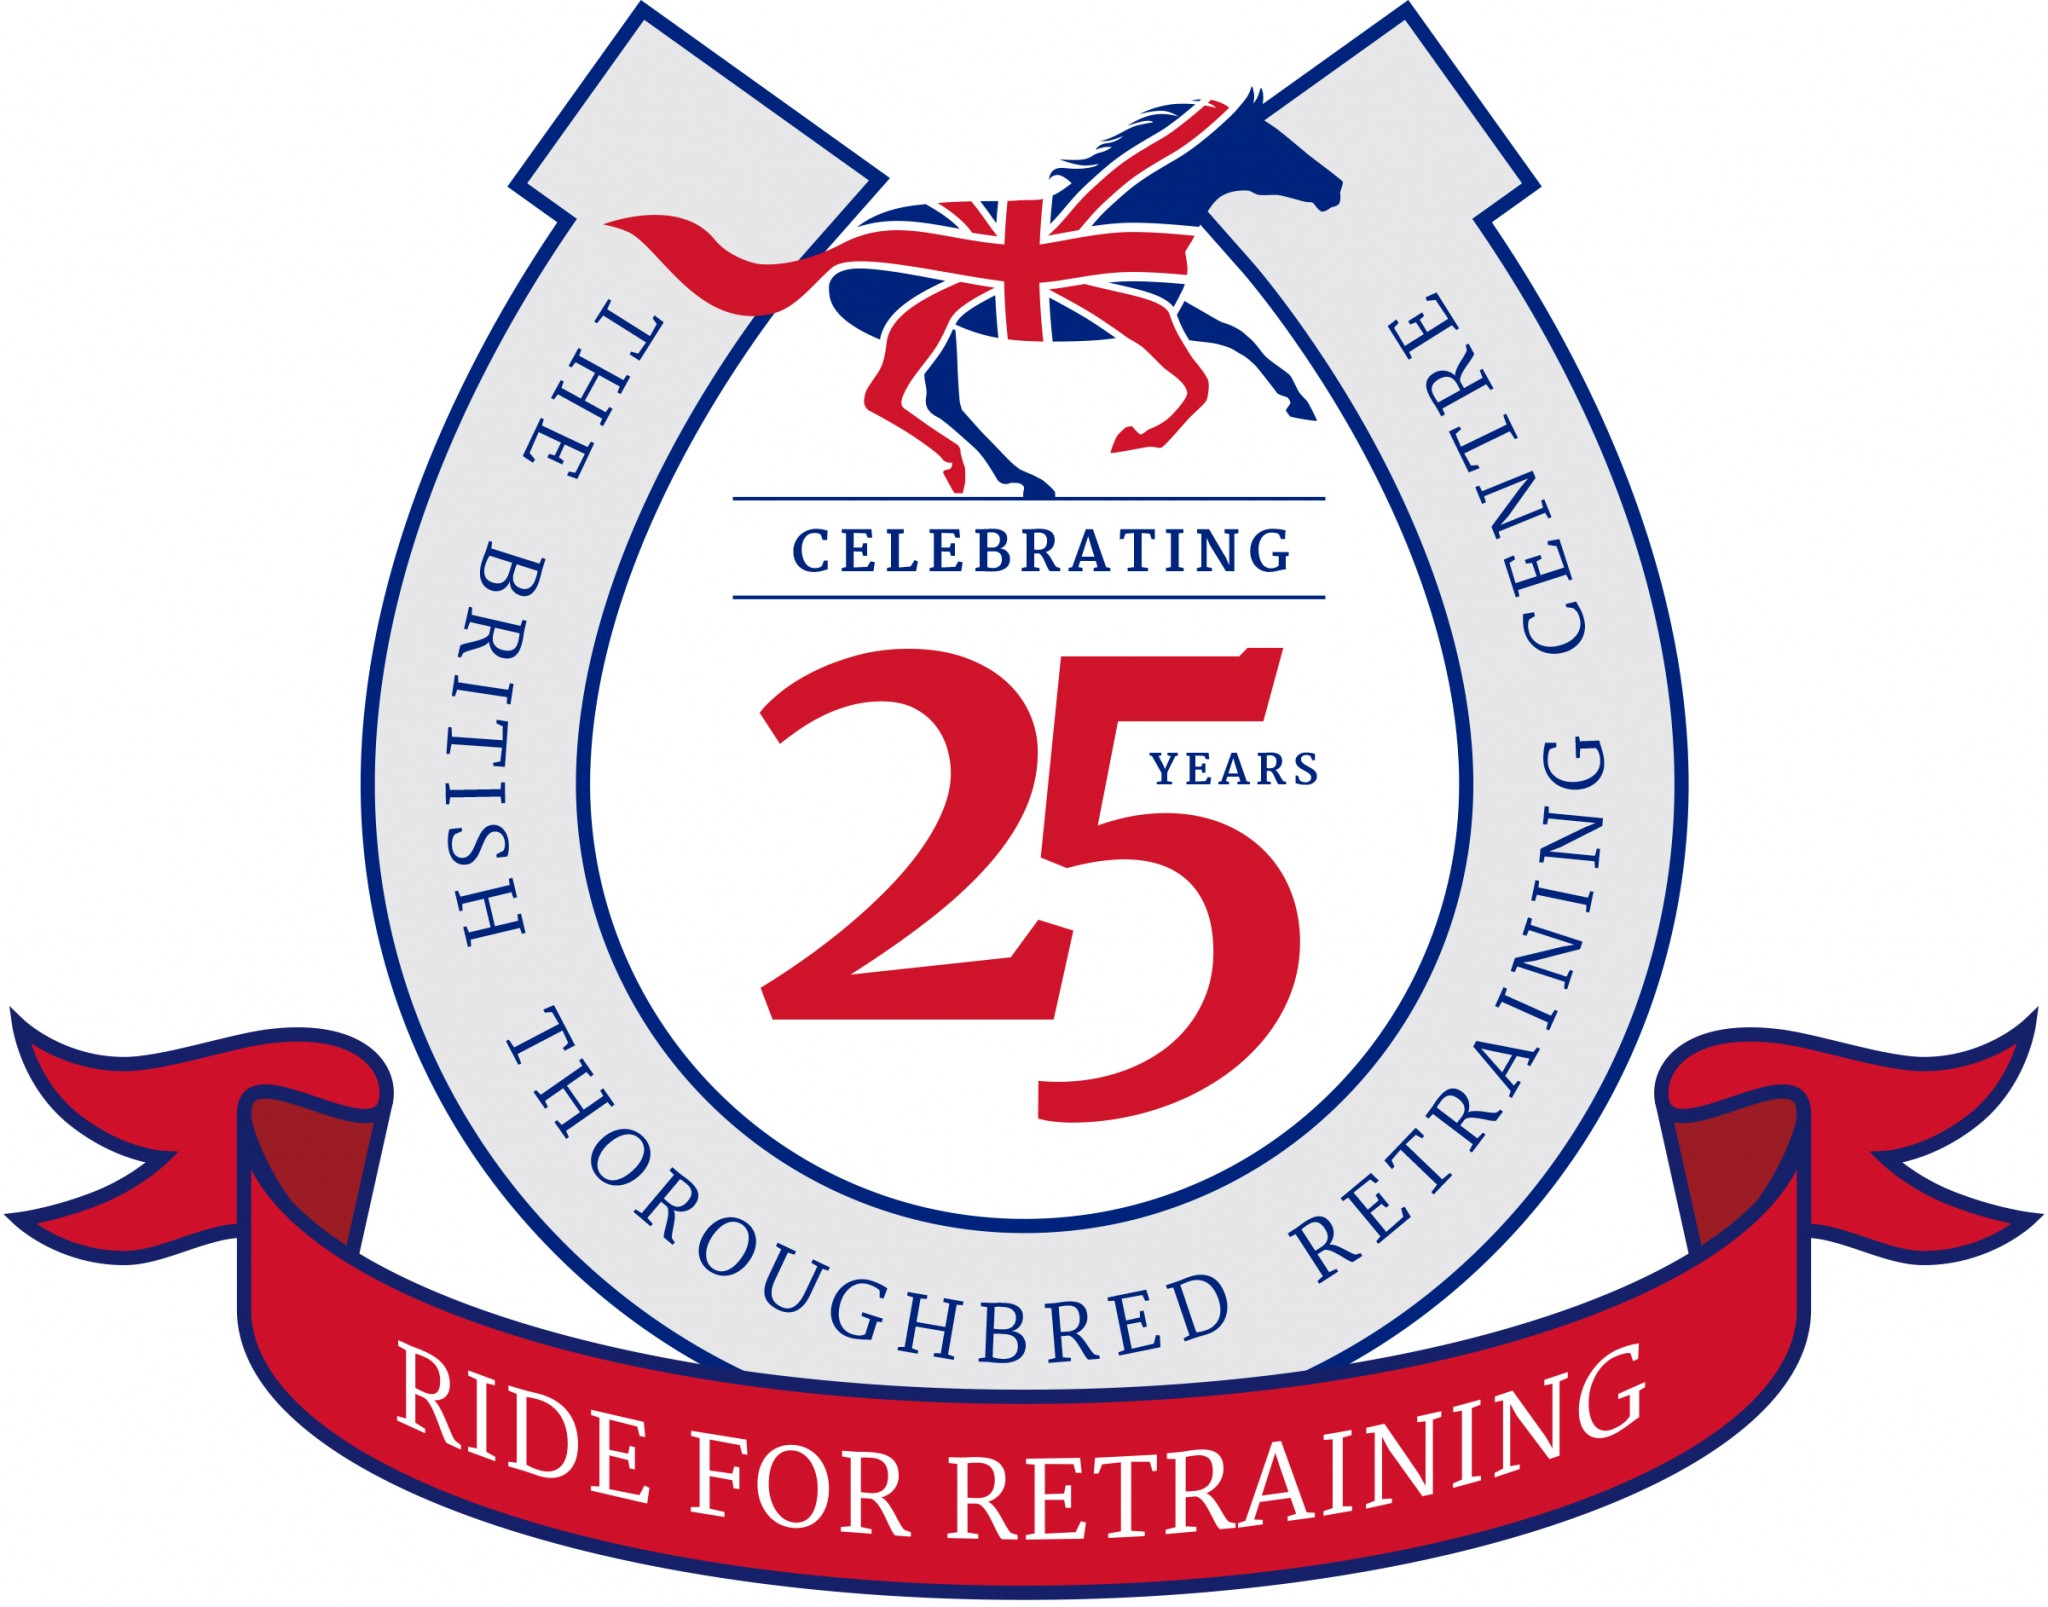 25 years roundel ride for retraining - The British Thoroughbred Retraining Centre Open Day a Huge Success